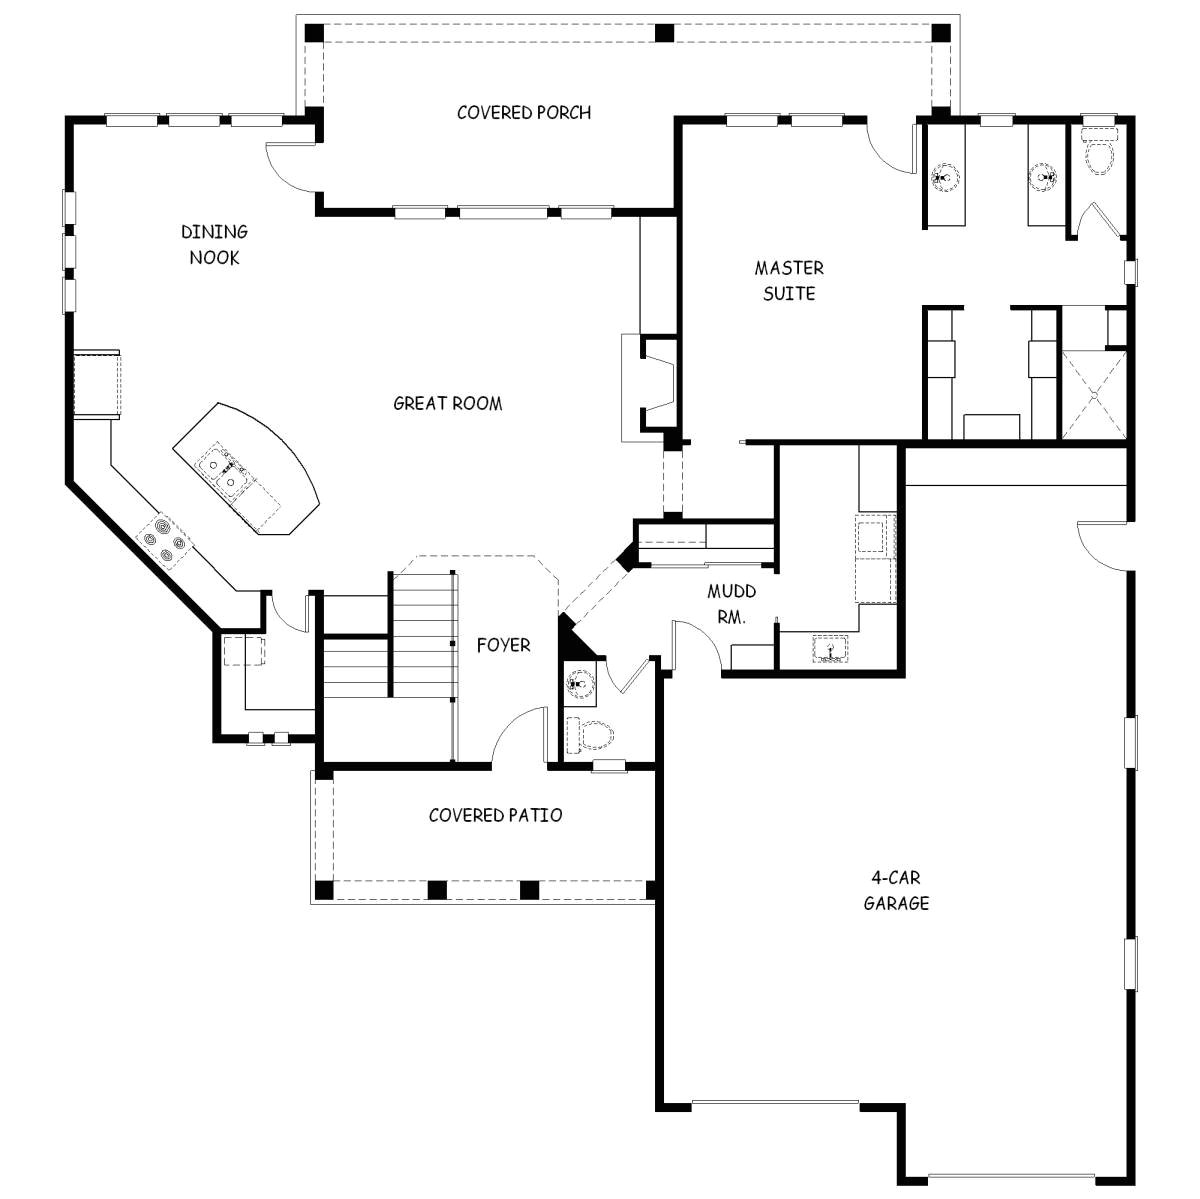 tahoe homes boise floor plans lovely fmci homes a boise idaho home builder